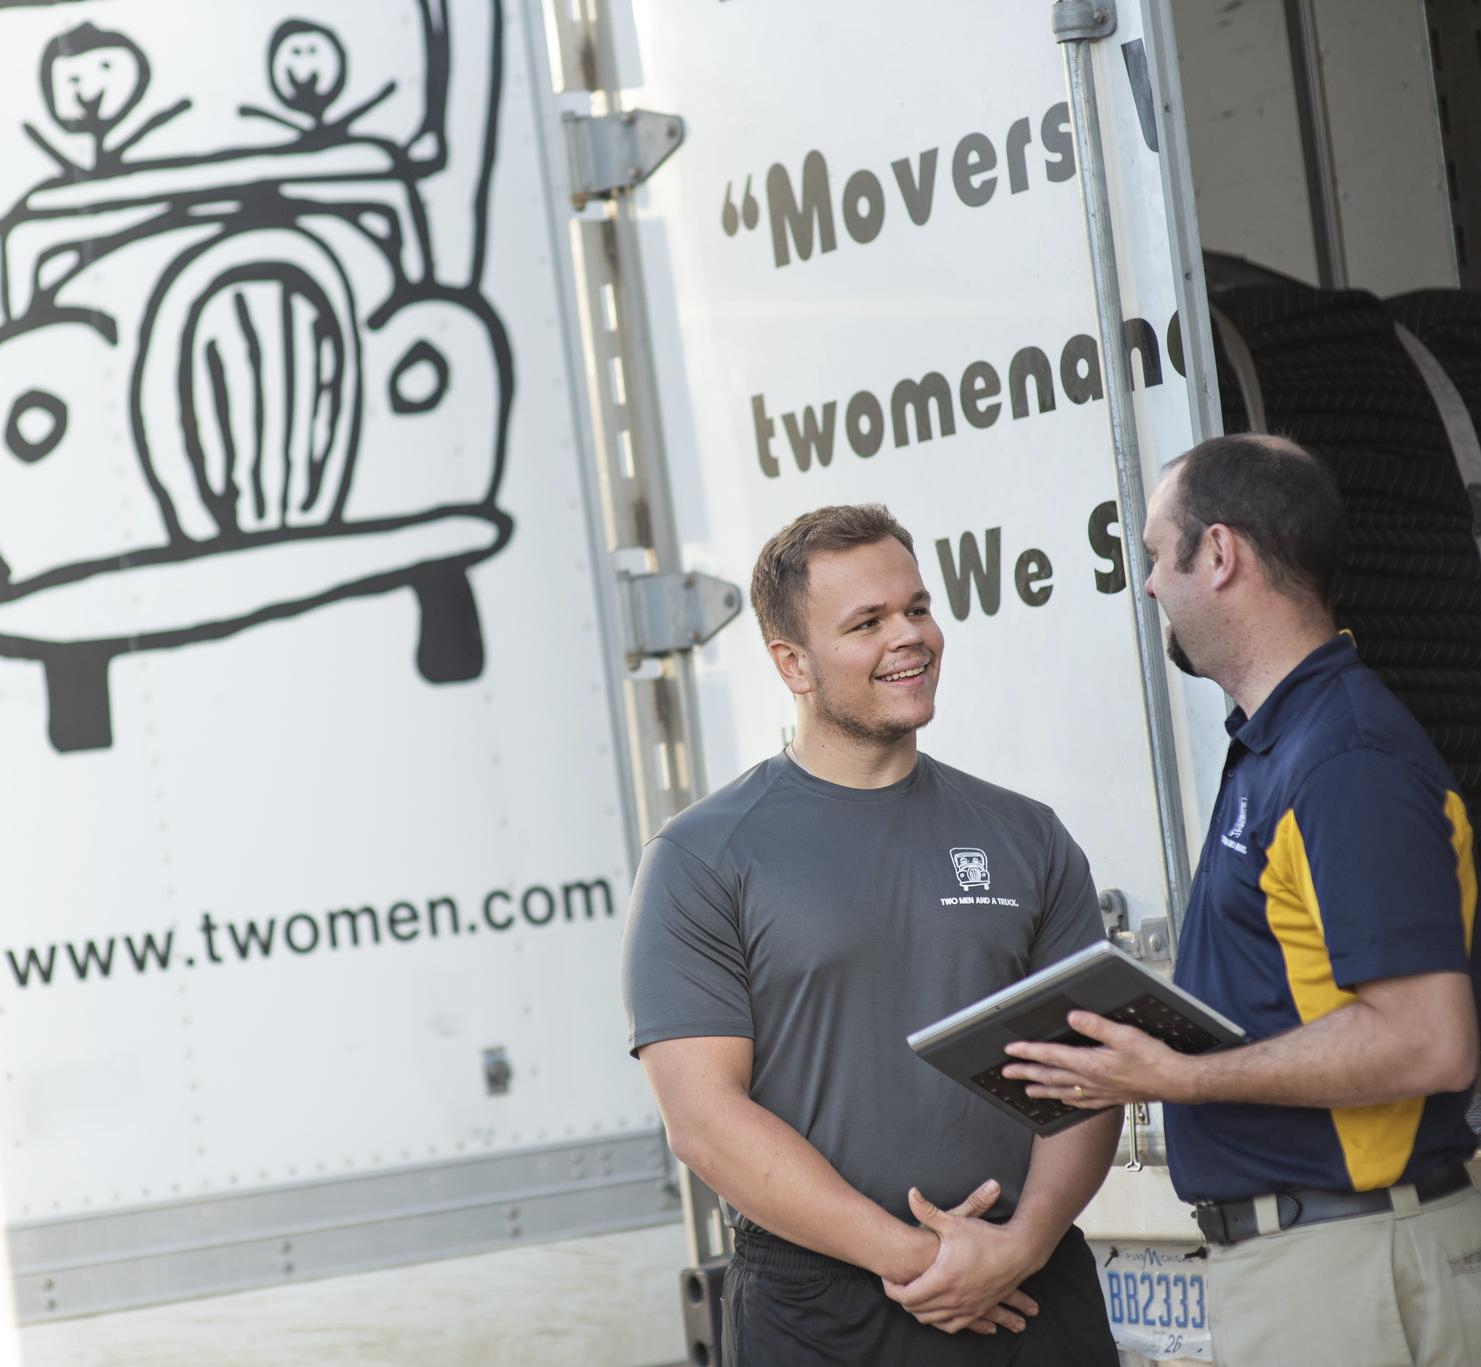 Two men standing beside a moving truck talking